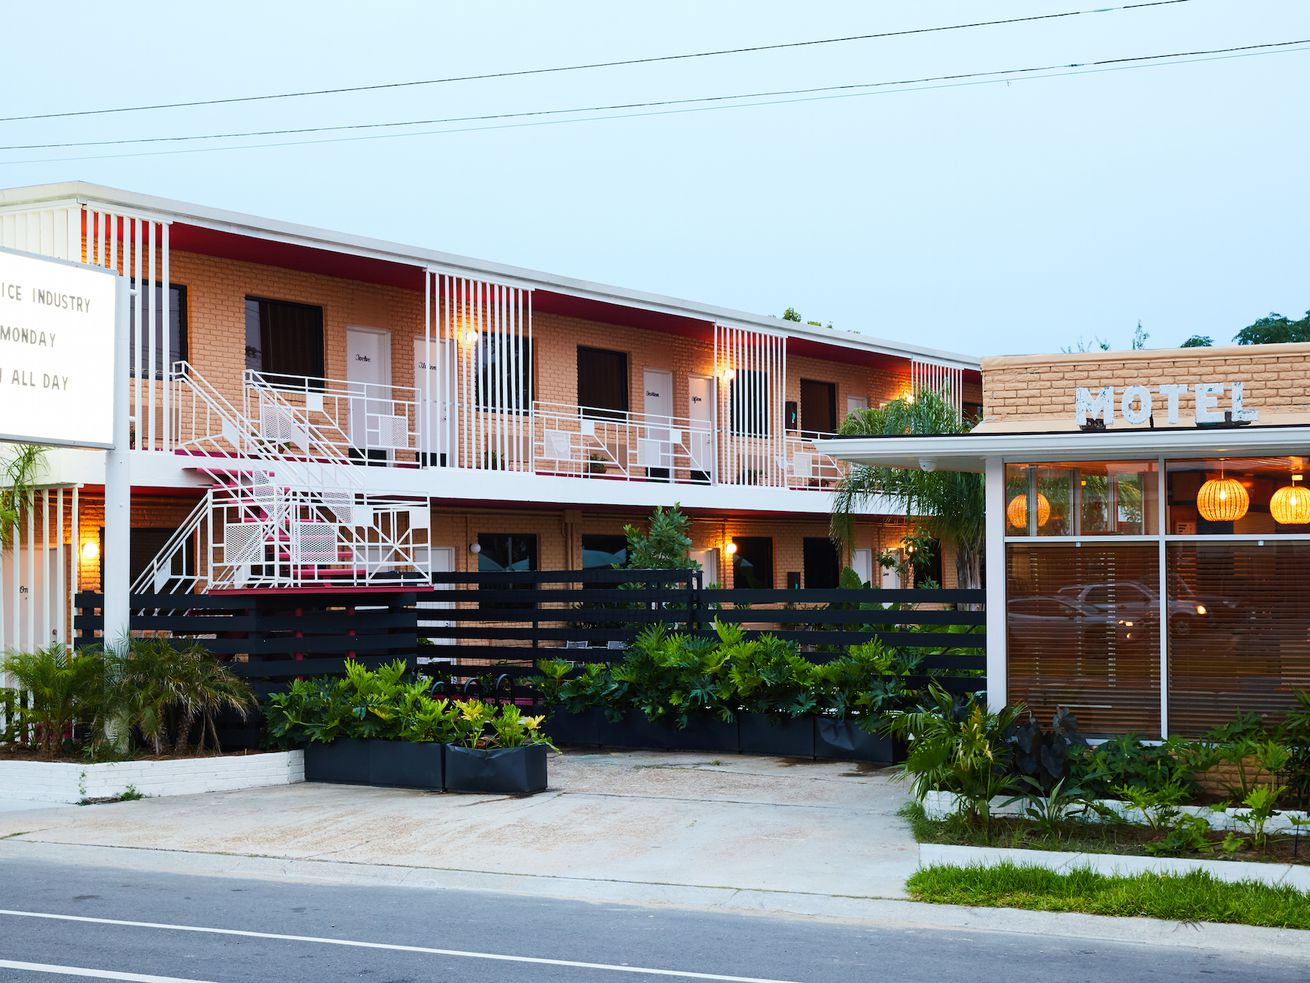 """The Drifter Motel in New Orleans. """"The motel, by nature of its privacy, cost and roadside location, makes it the democracy of hospitality, claimed in equal measure by the lone traveler, the family, the trysters, explorers, adventurers, and weary travelers."""""""